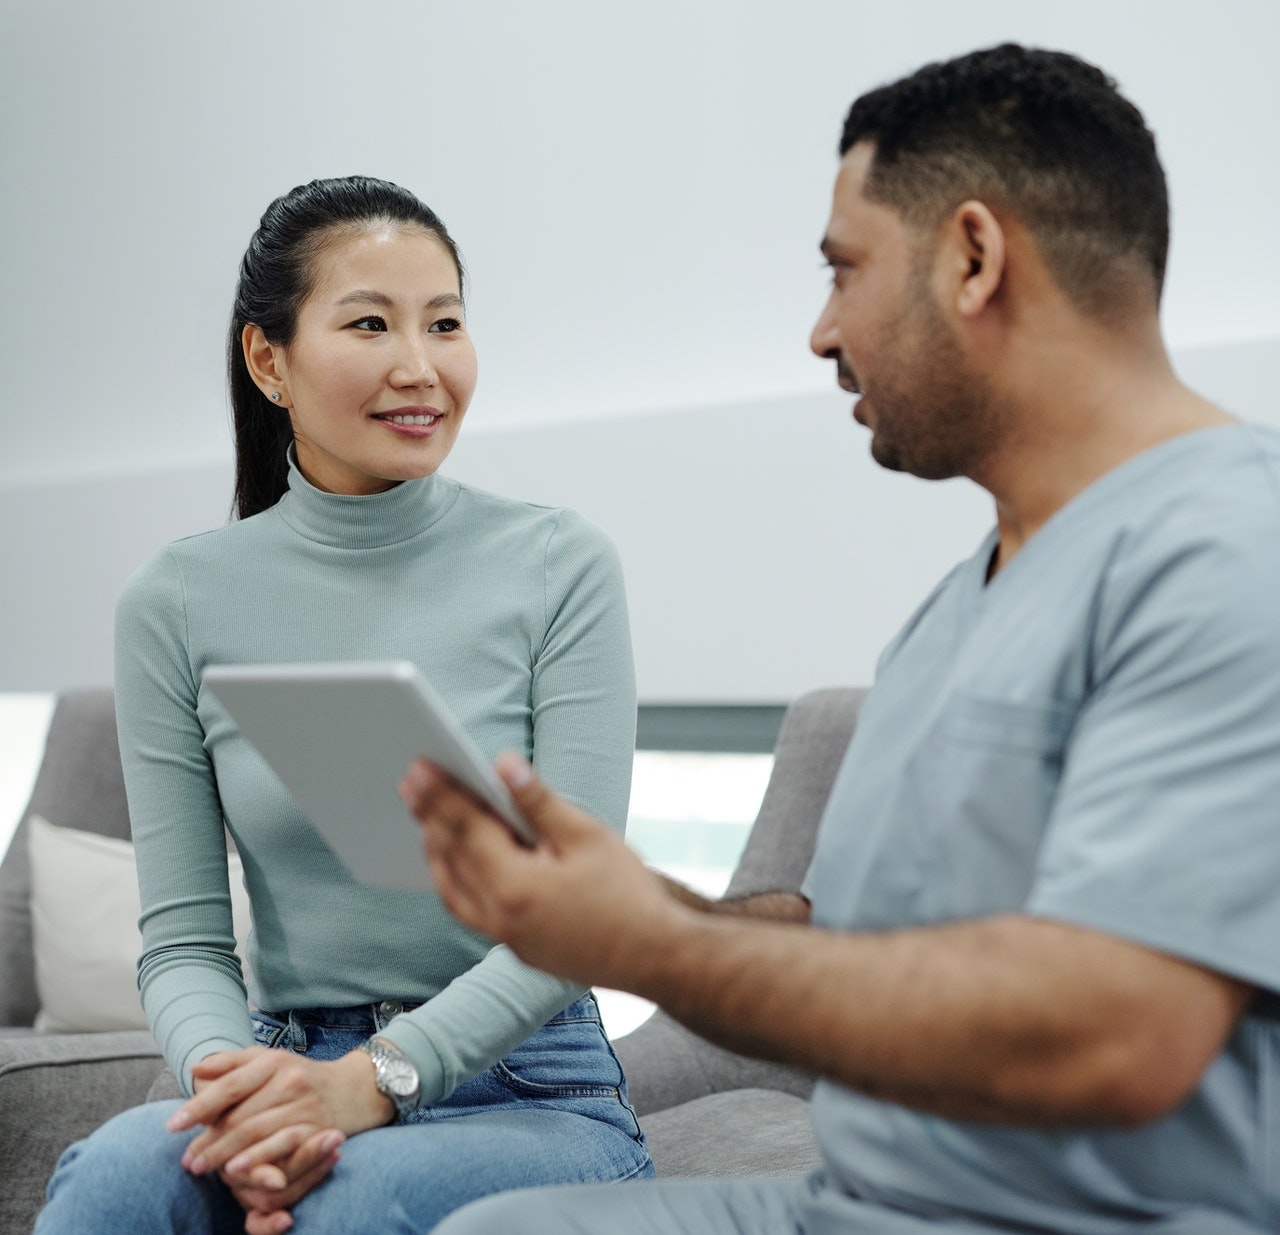 Practitioner communicates with client